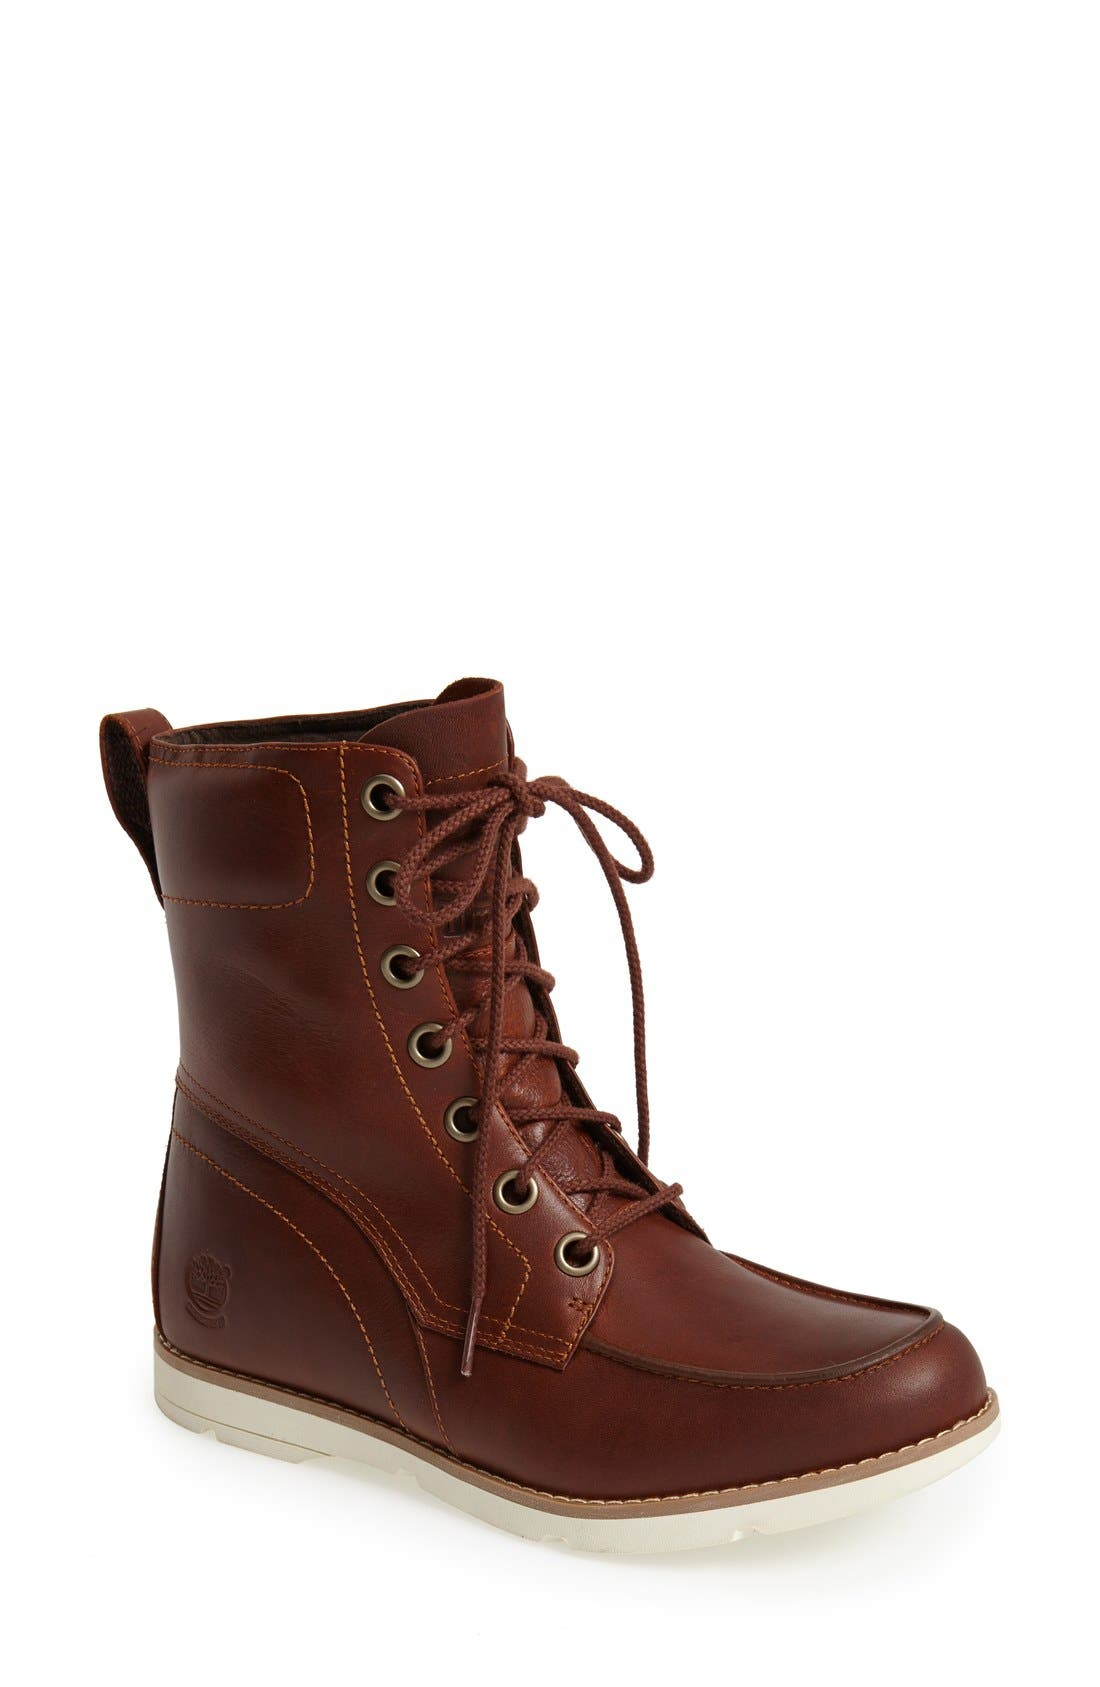 Main Image - Timberland Earthkeepers® 'Mosely' Waterproof Leather Boot (Women)